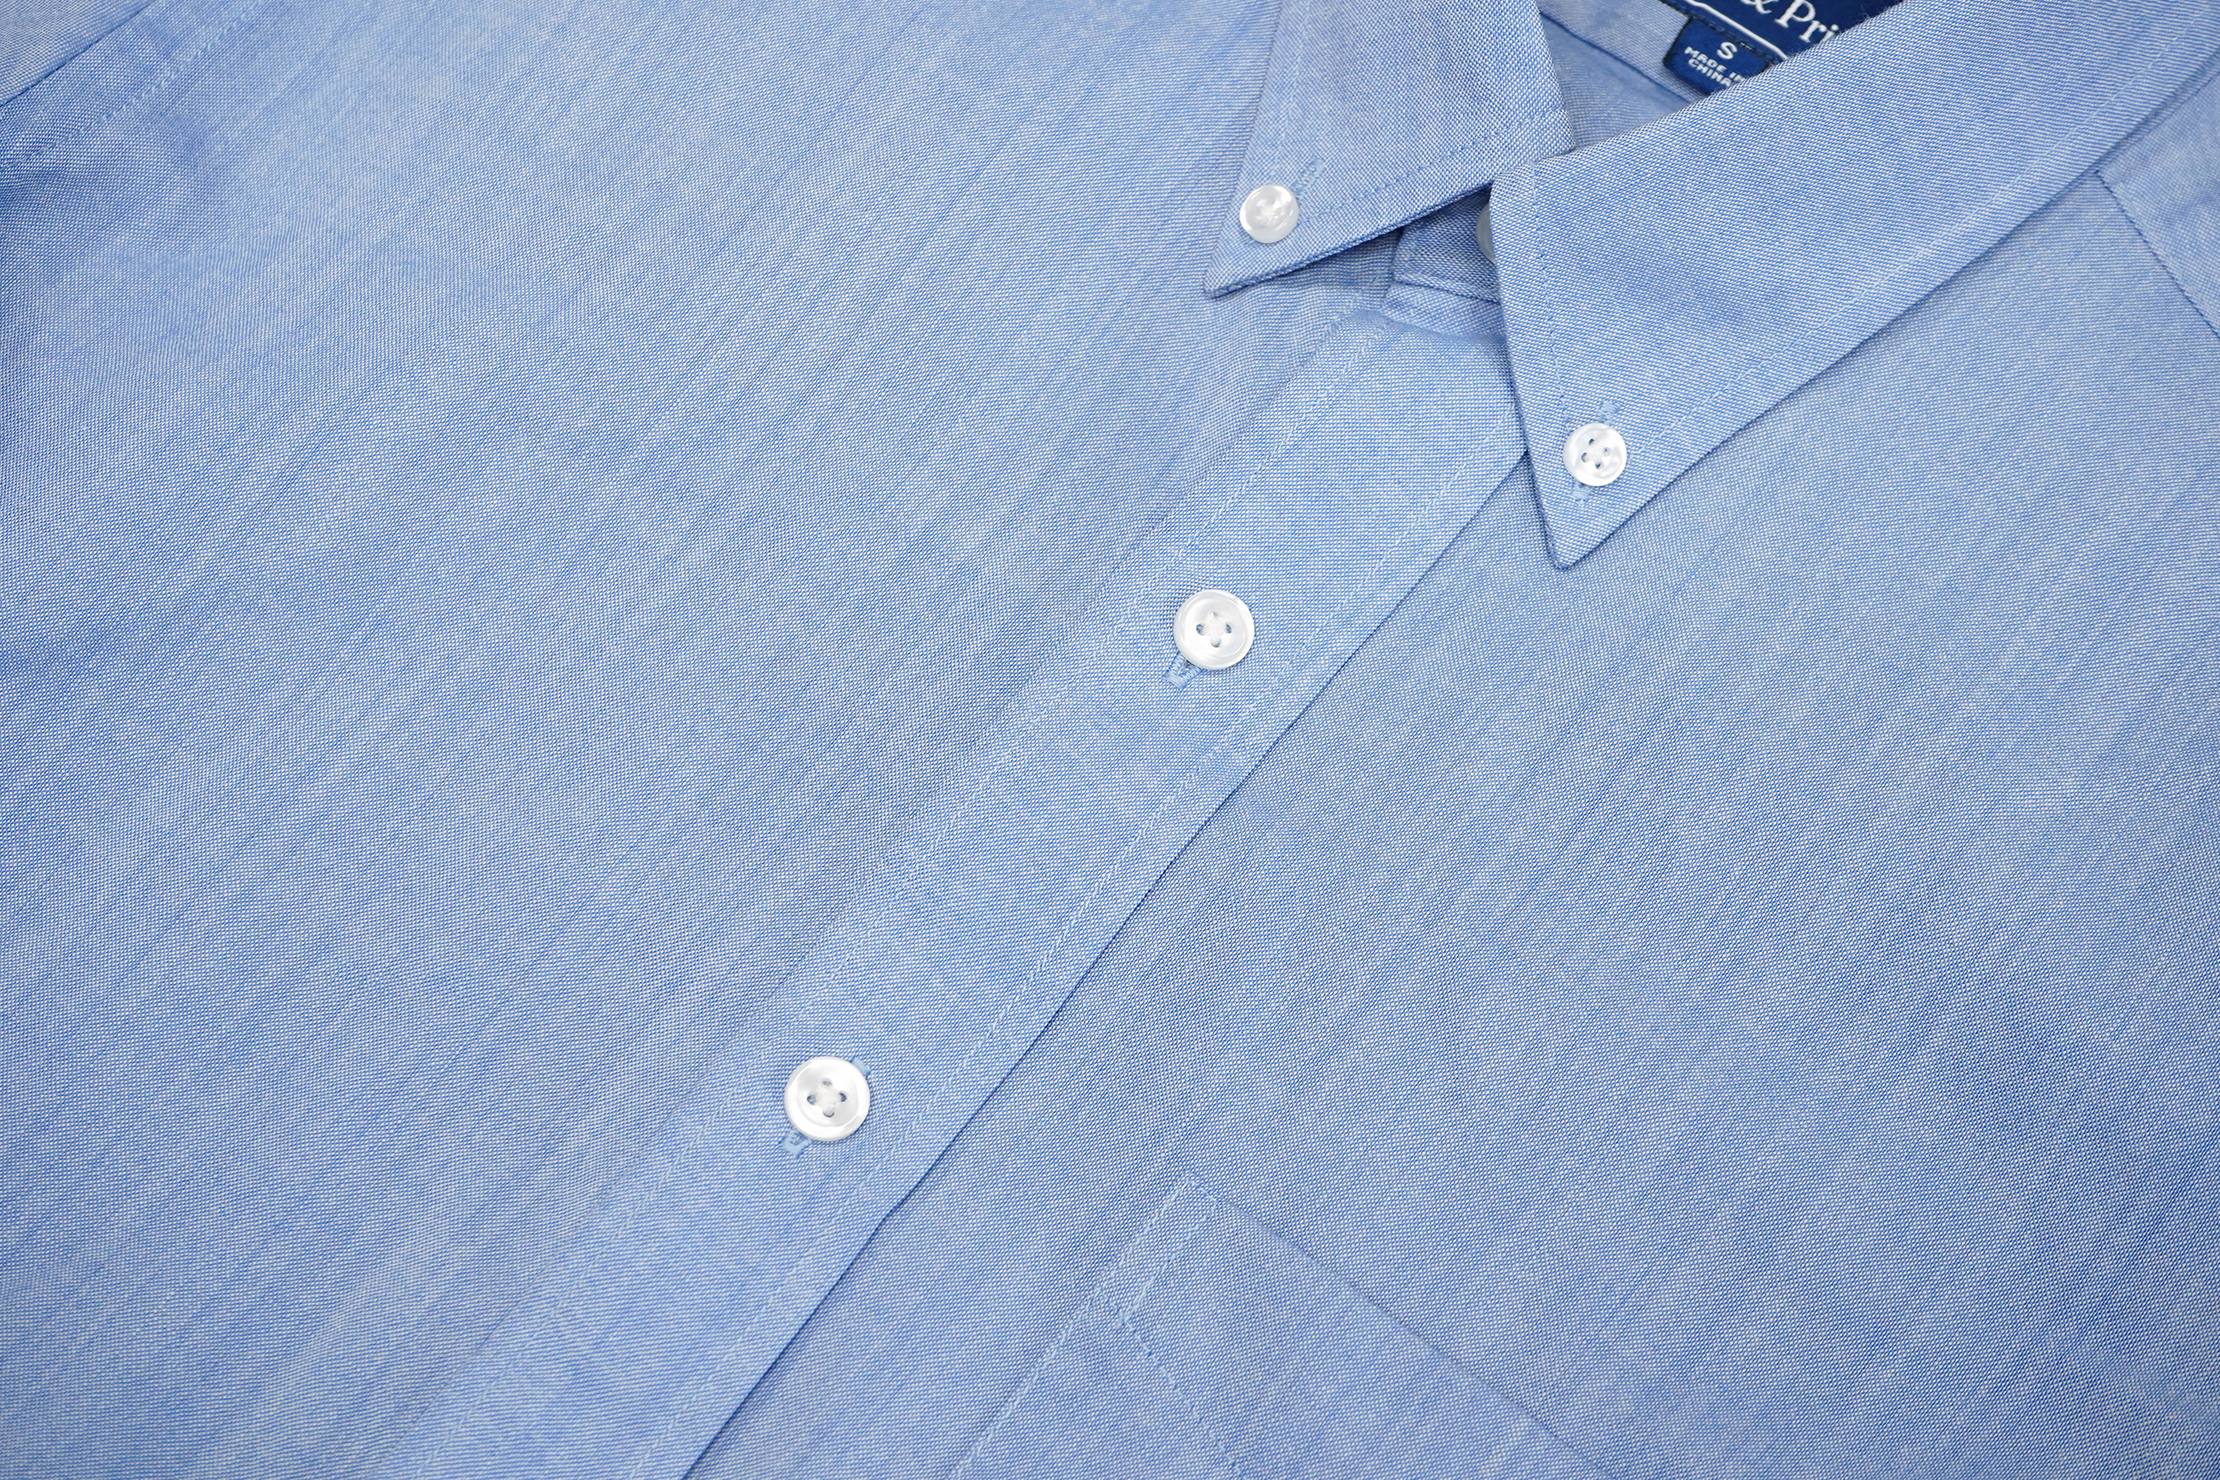 Wool & Prince Button Down Oxford Buttons